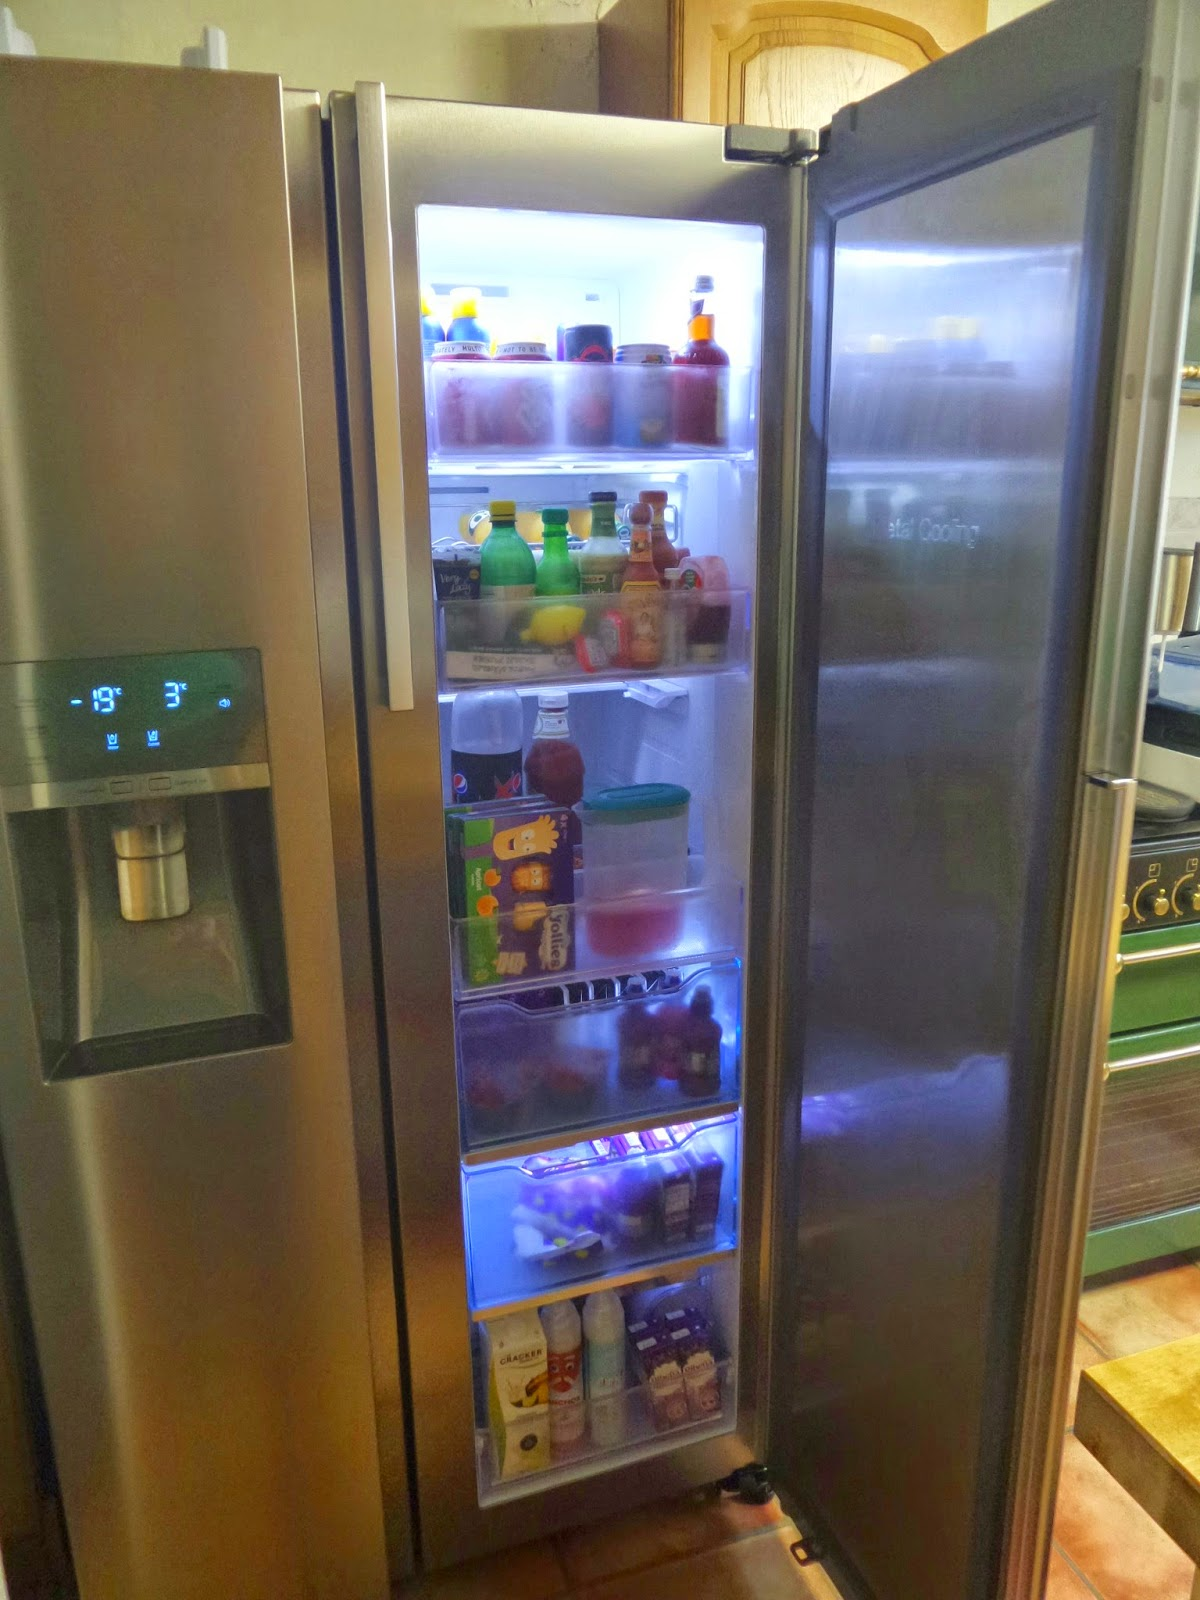 Samsung Showcase Fridge Freezer - Showcase open